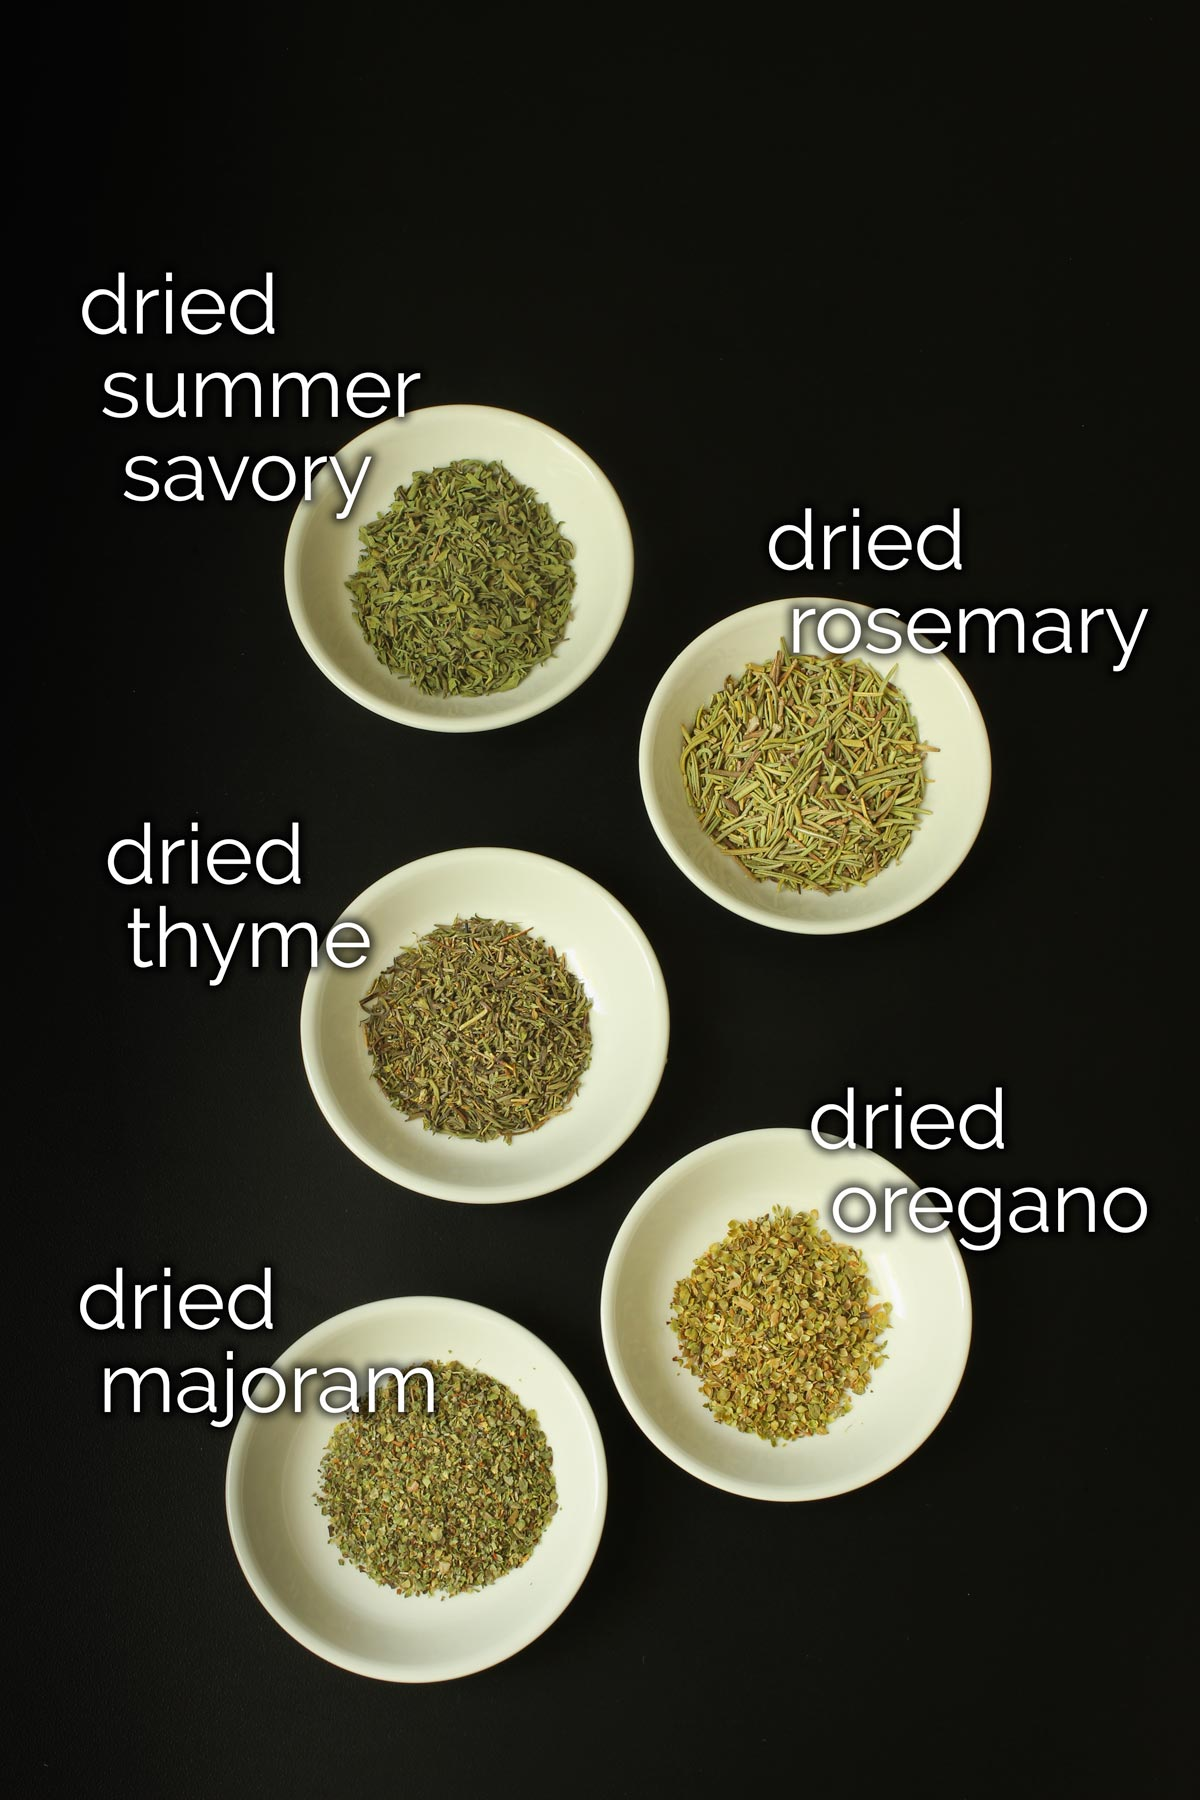 ingredients for homemade herbes de provence in small white dishes.